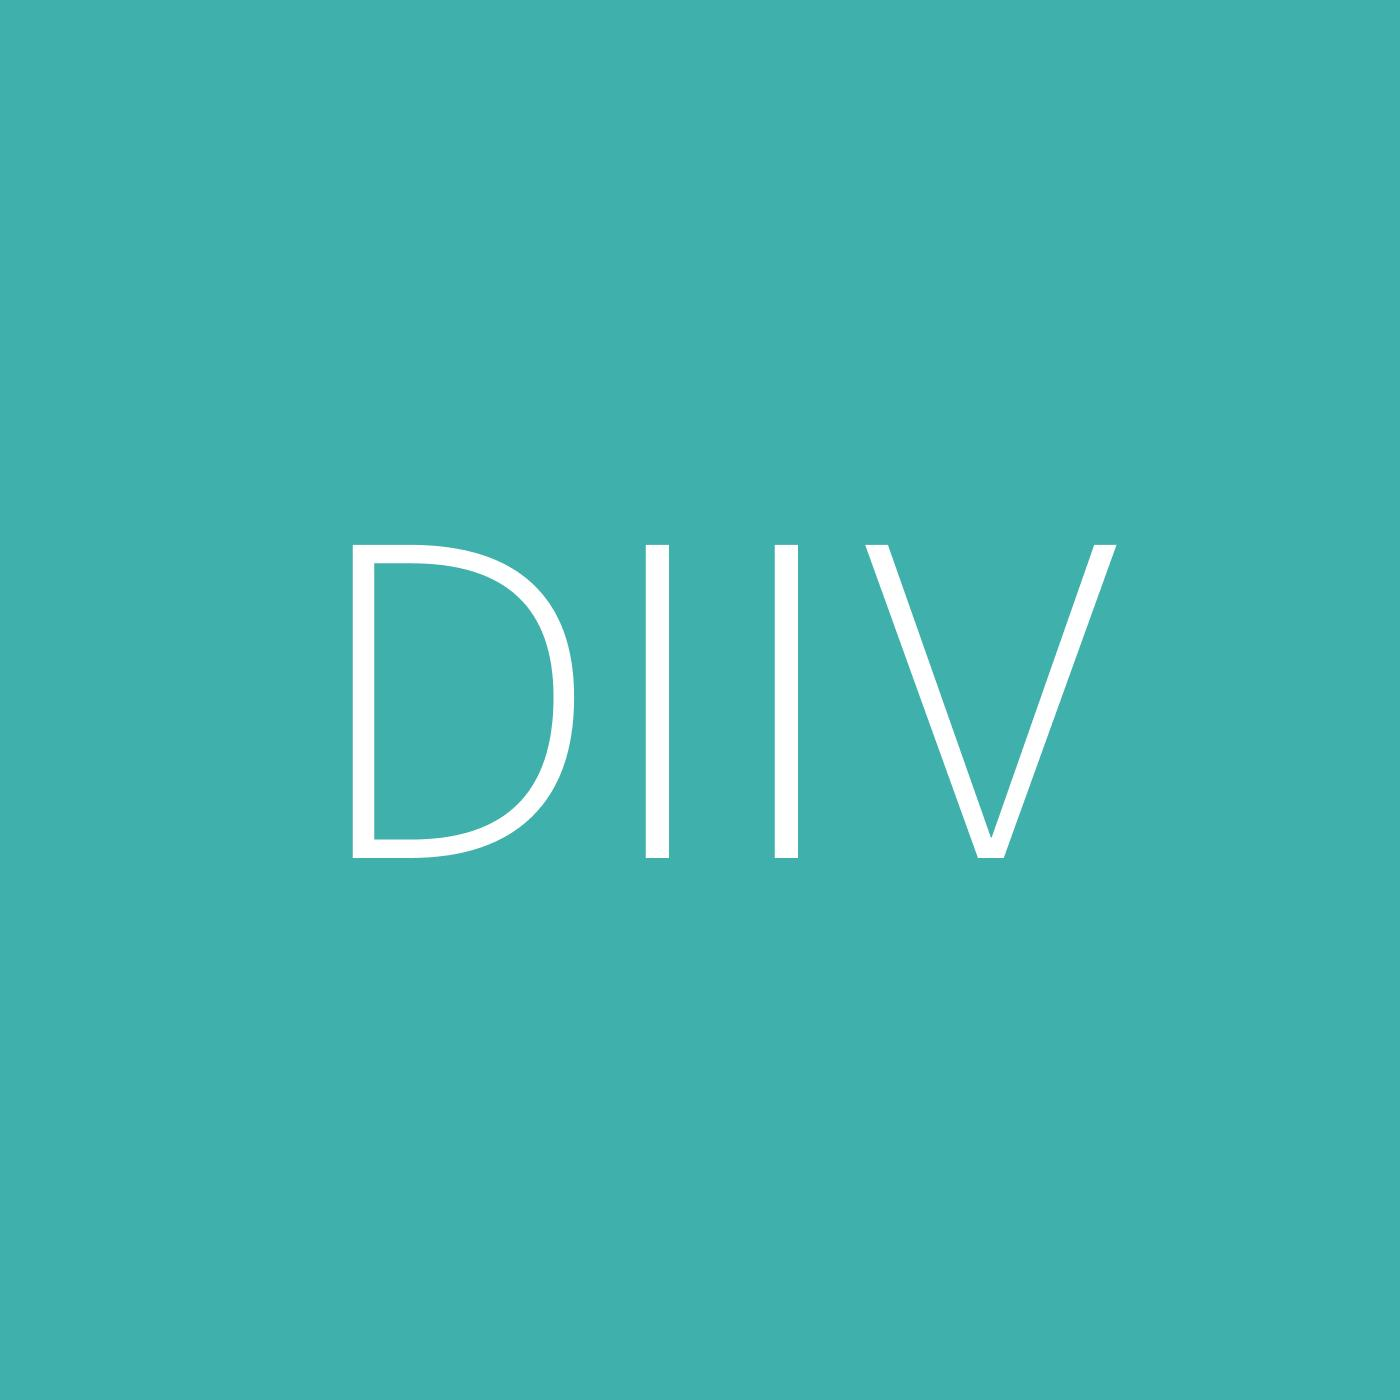 DIIV Playlist Artwork